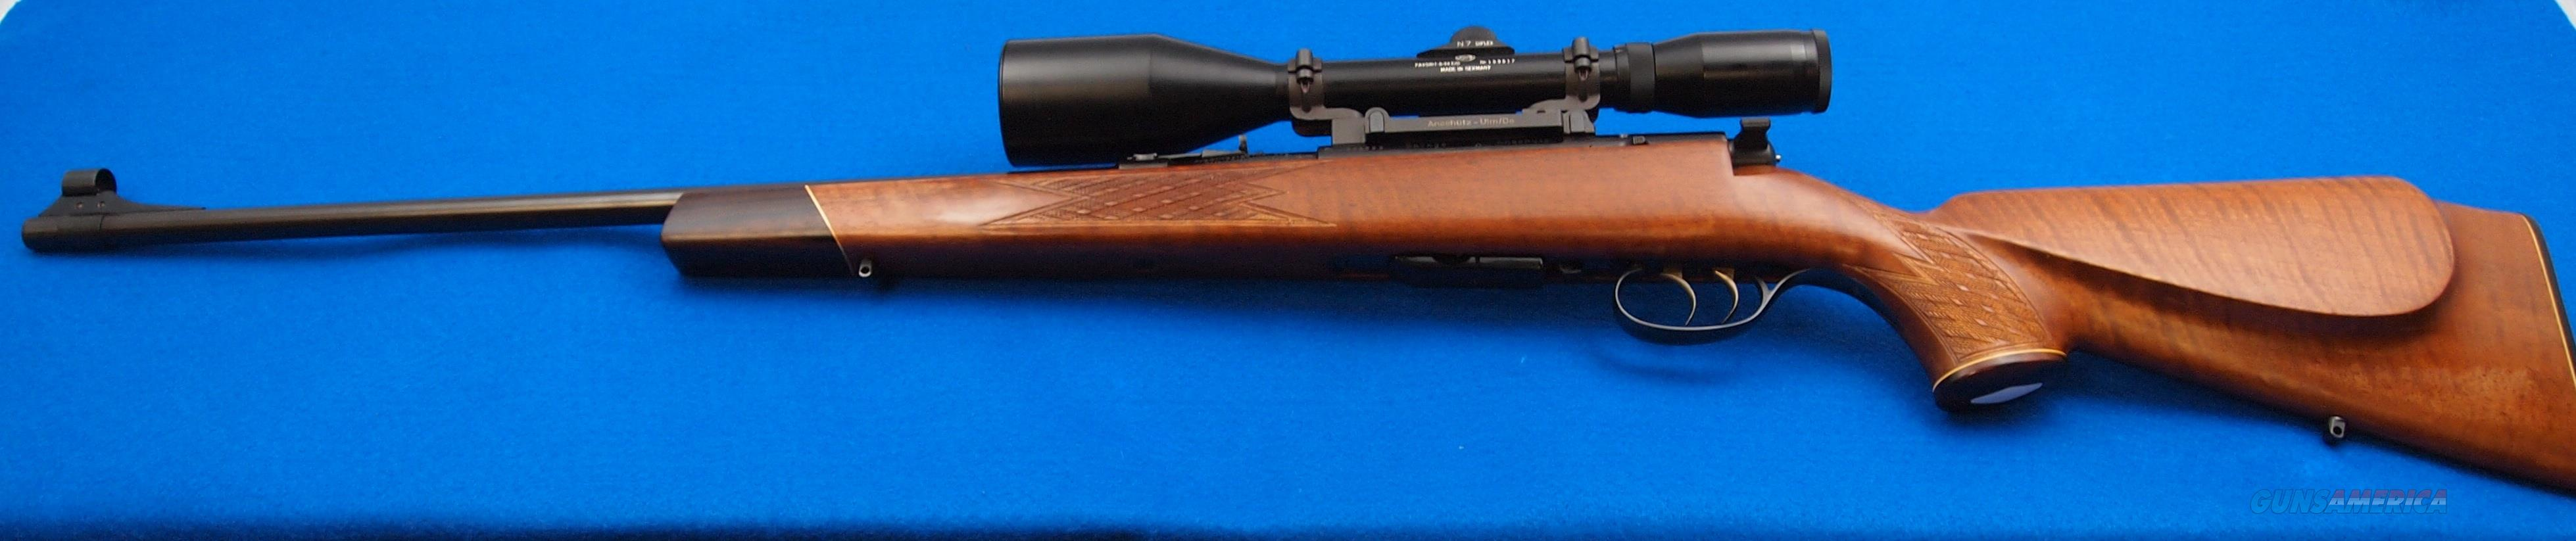 SAVAGE / ANSCHUTZ MODEL 153 .222  RIFLE  Guns > Rifles > Anschutz Rifles